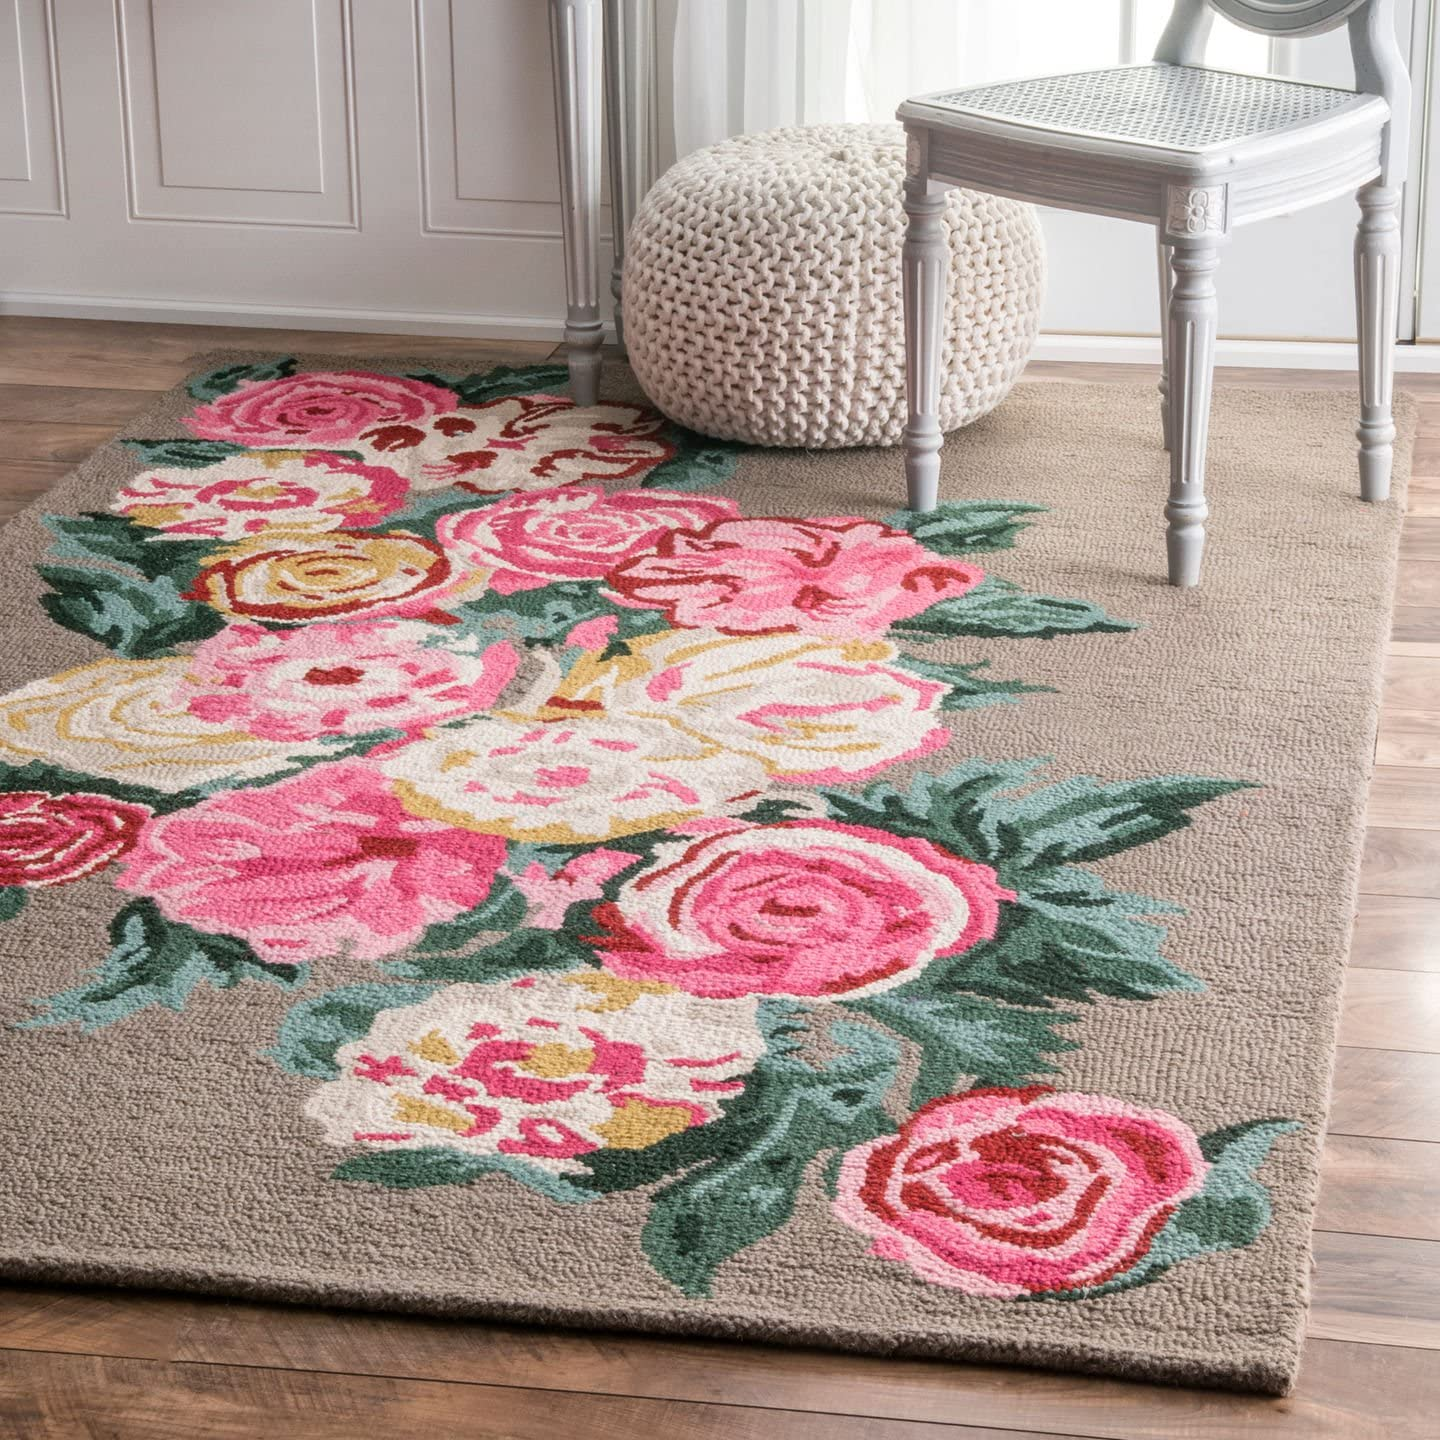 nuLOOM Bouquet Farmhouse Rose Wool Rug, 3 x 5 , Light Brown